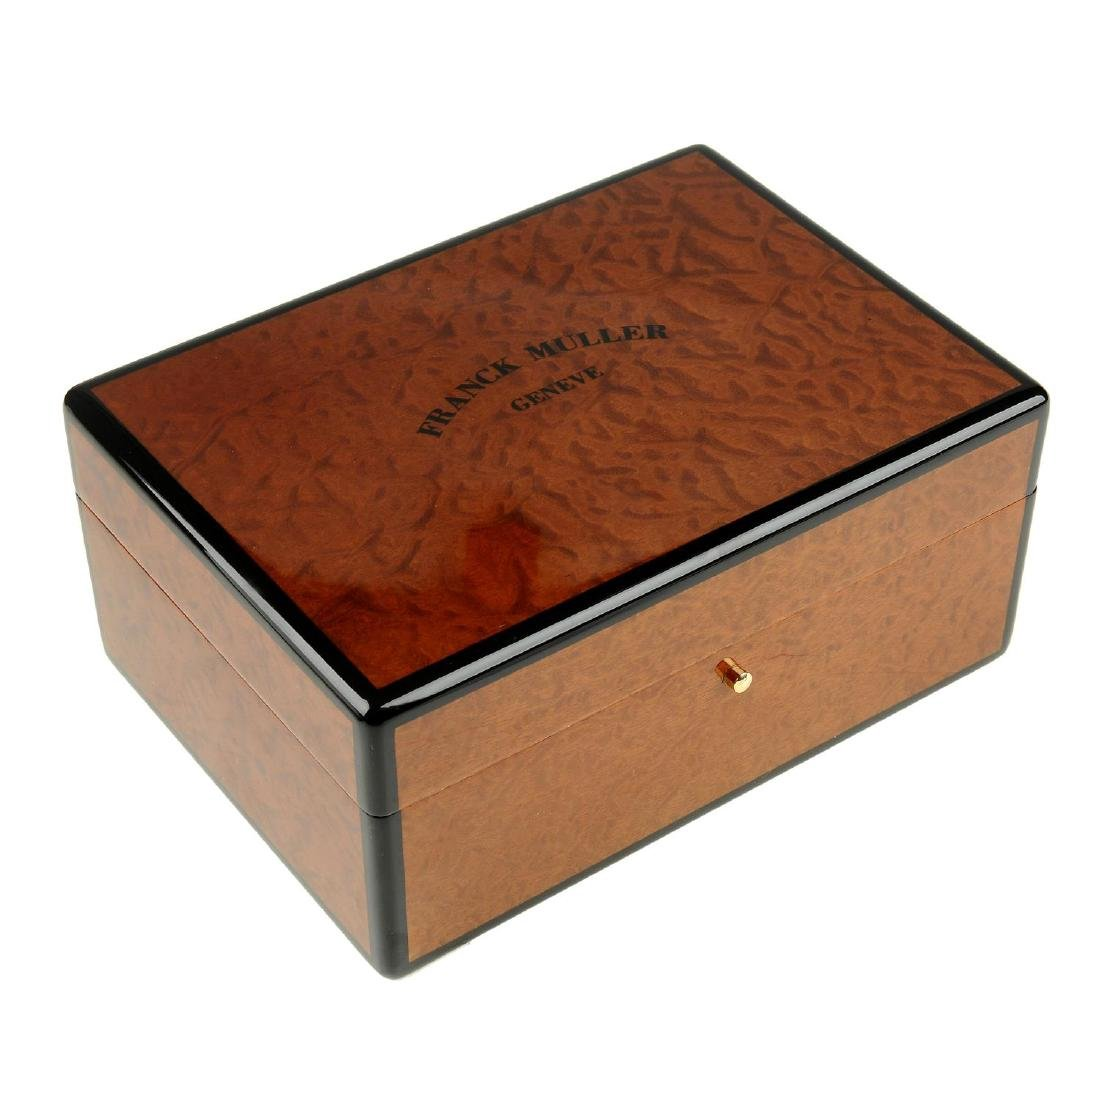 FRANCK MULLER - a complete watch box